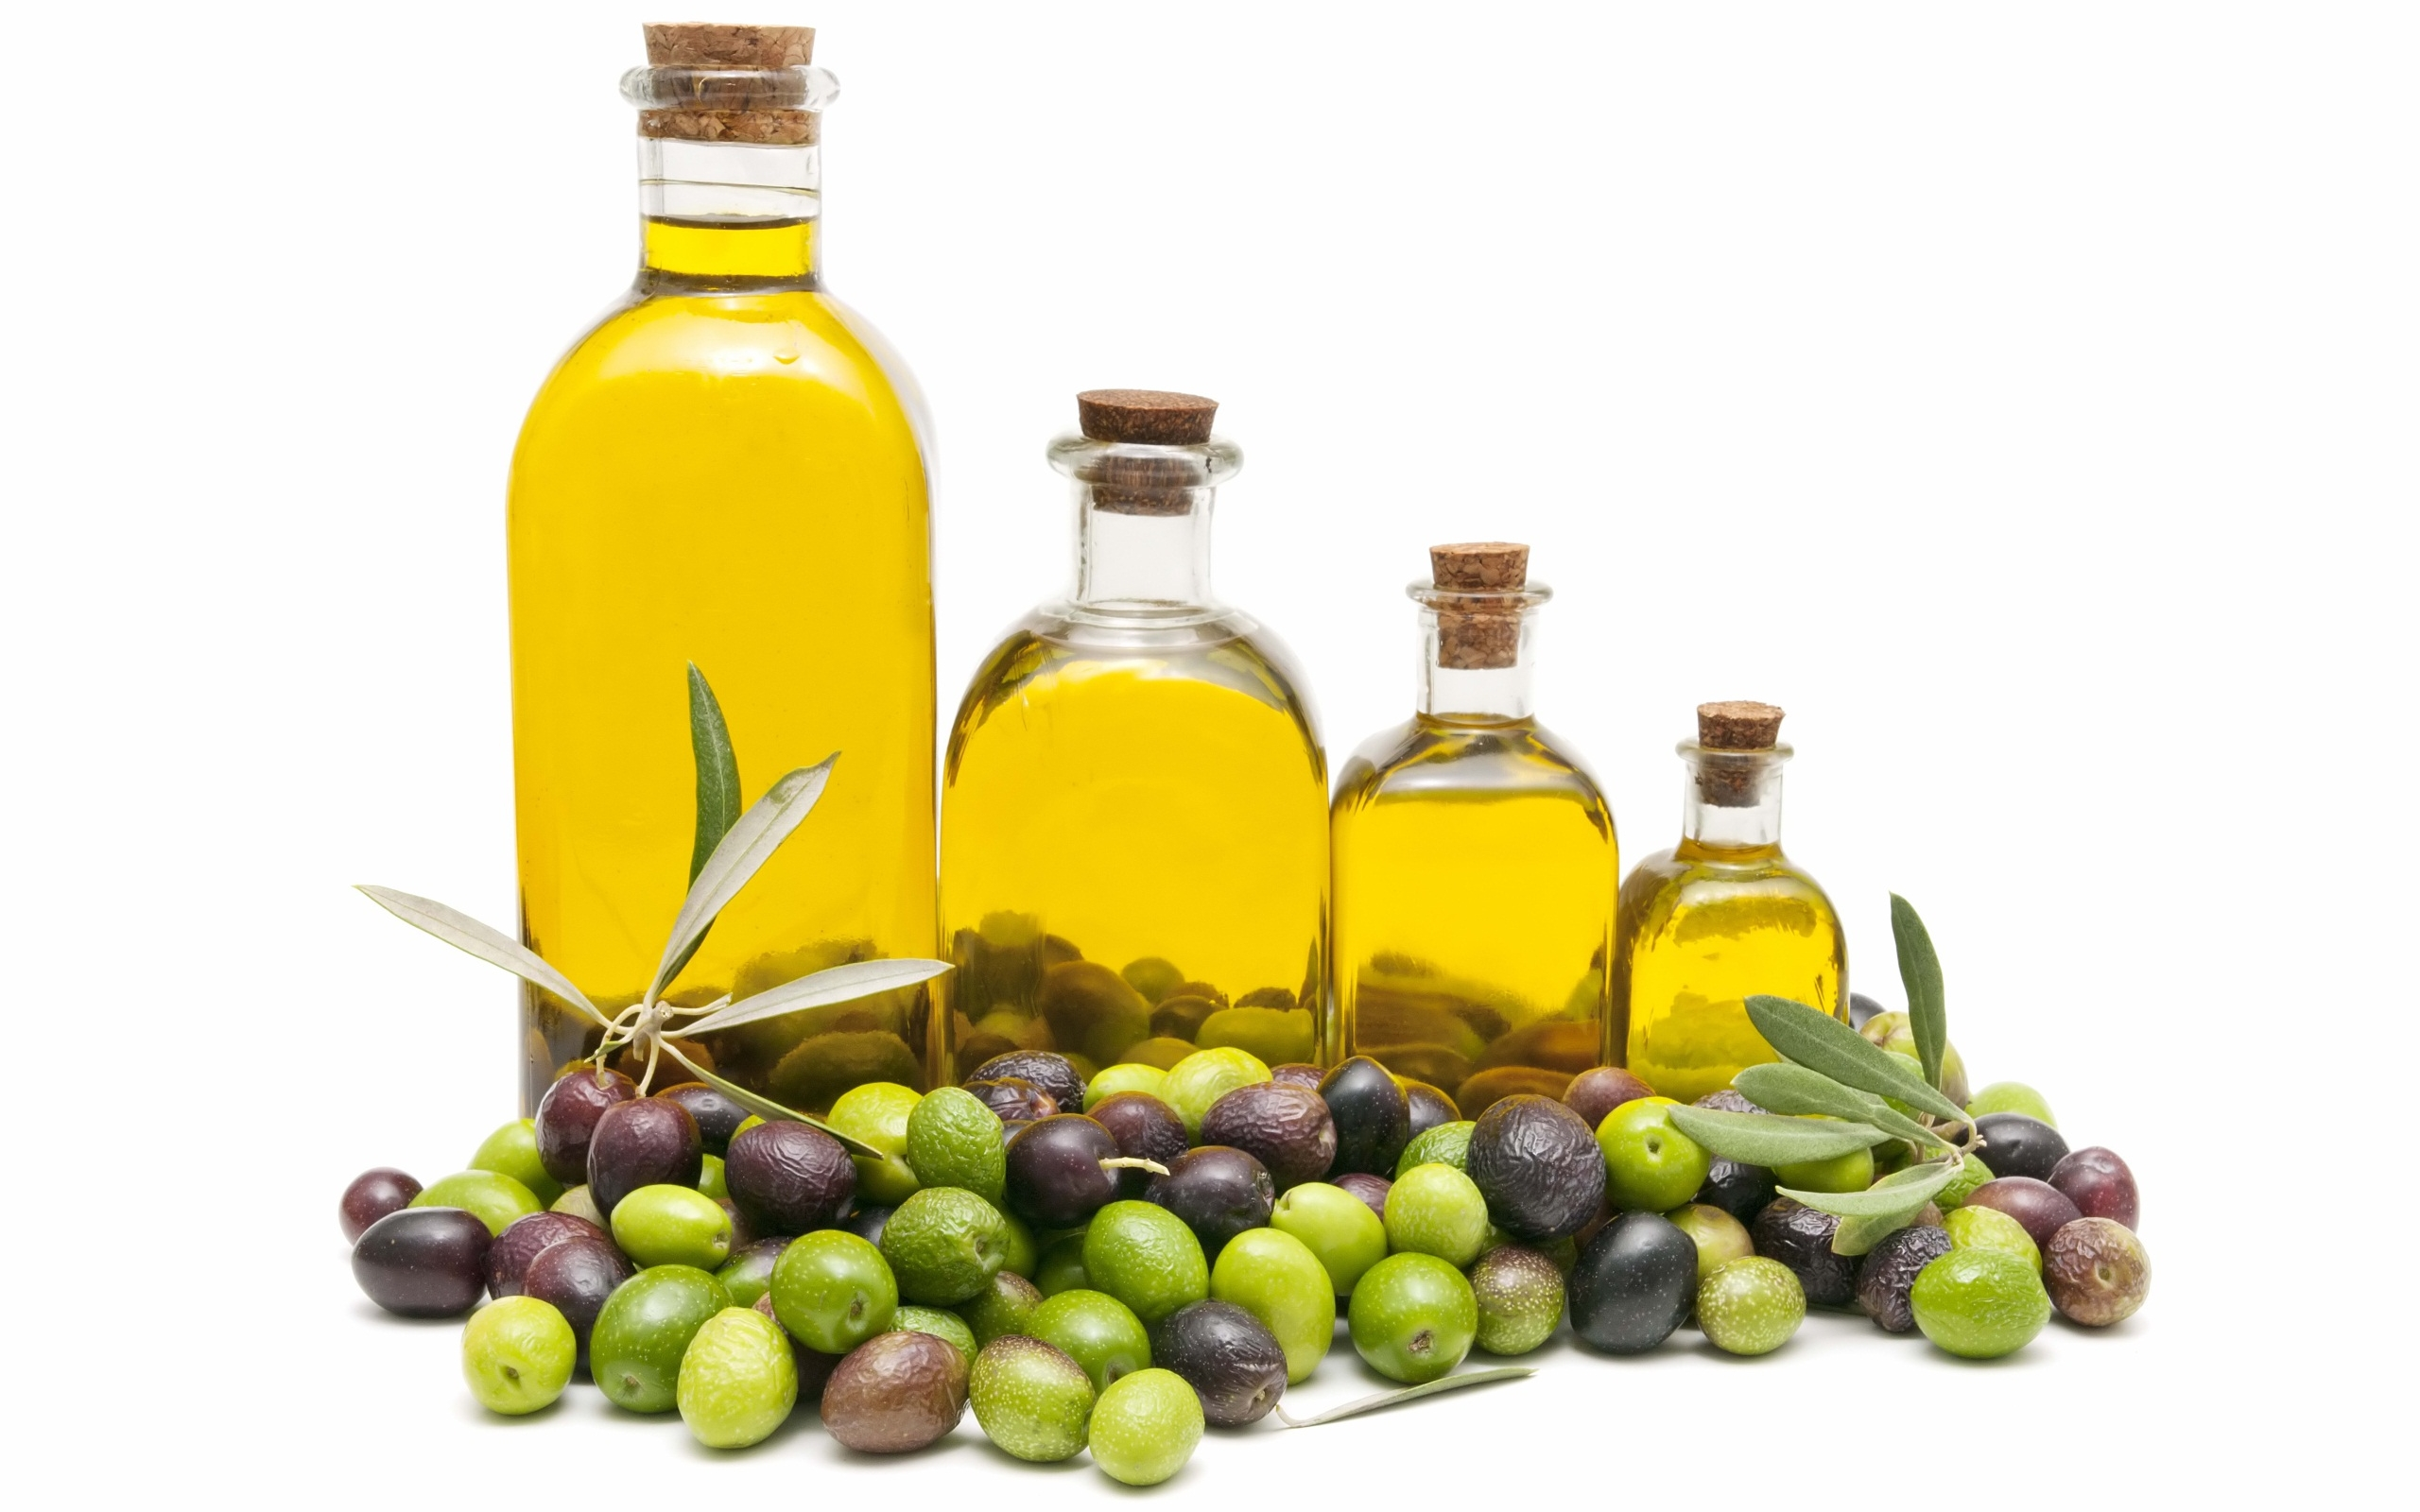 Olive Oil is One of the Safest Oils for Frying and Cooking